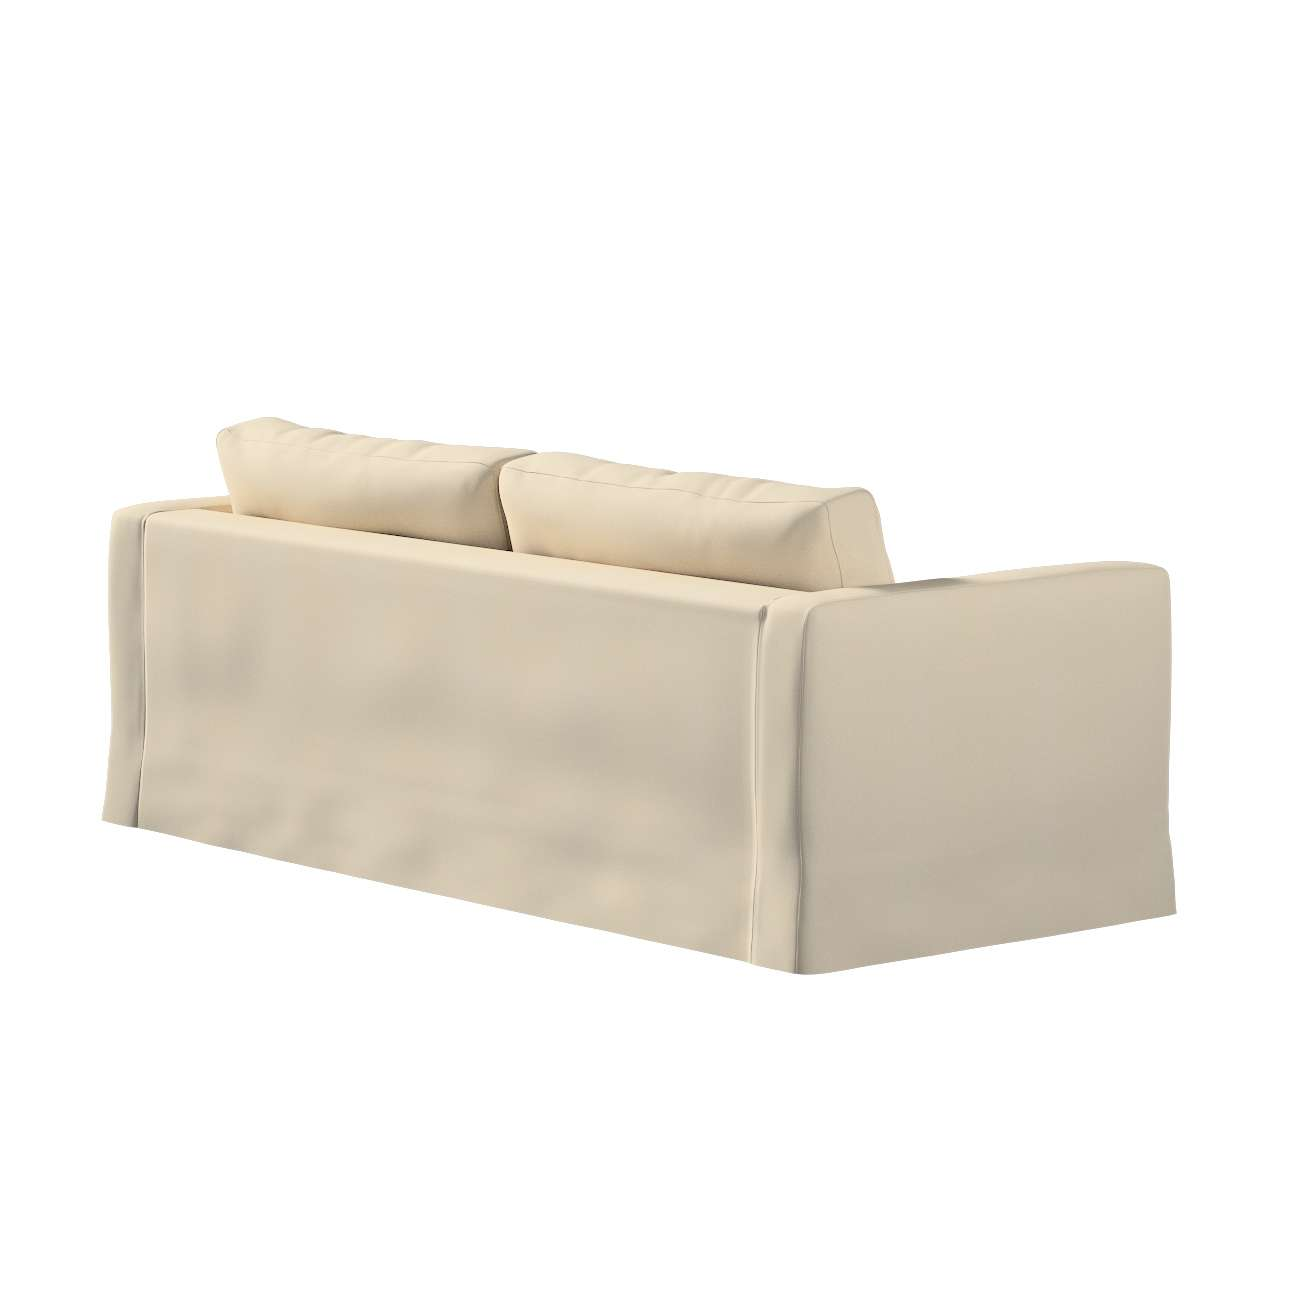 Floor length Karlstad 3-seater sofa cover in collection Madrid, fabric: 160-61